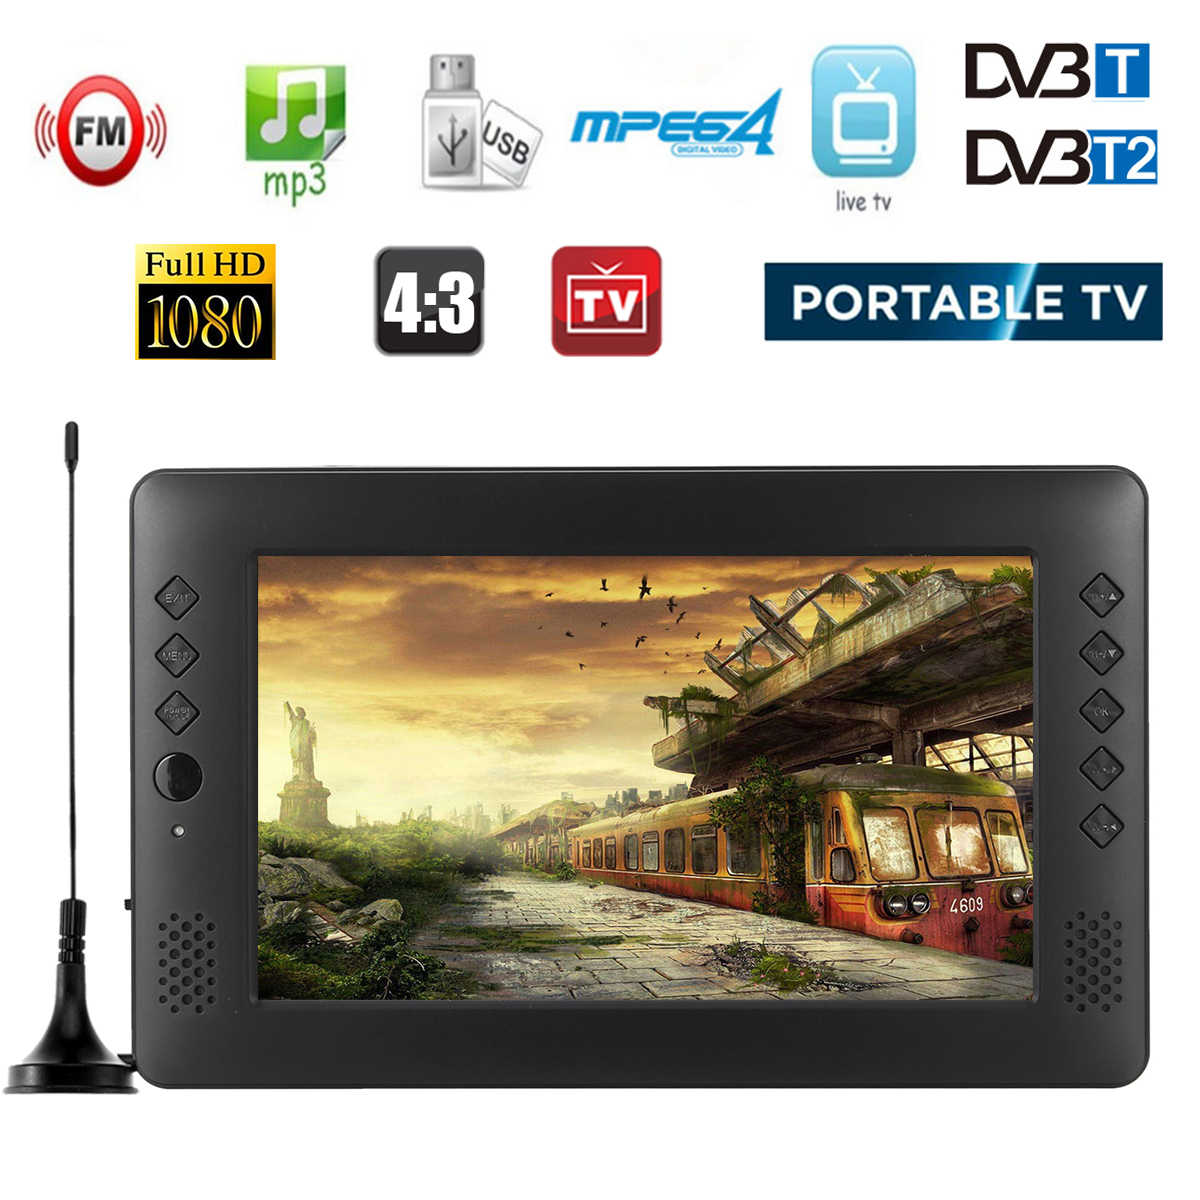 تلفاز صغير محمول 9 بوصة DVB-T/T2 DTV FM HD 1080P H.265 تلفاز Led رقمي وتناظري يدعم MP4 AC3 HDMI مراقب